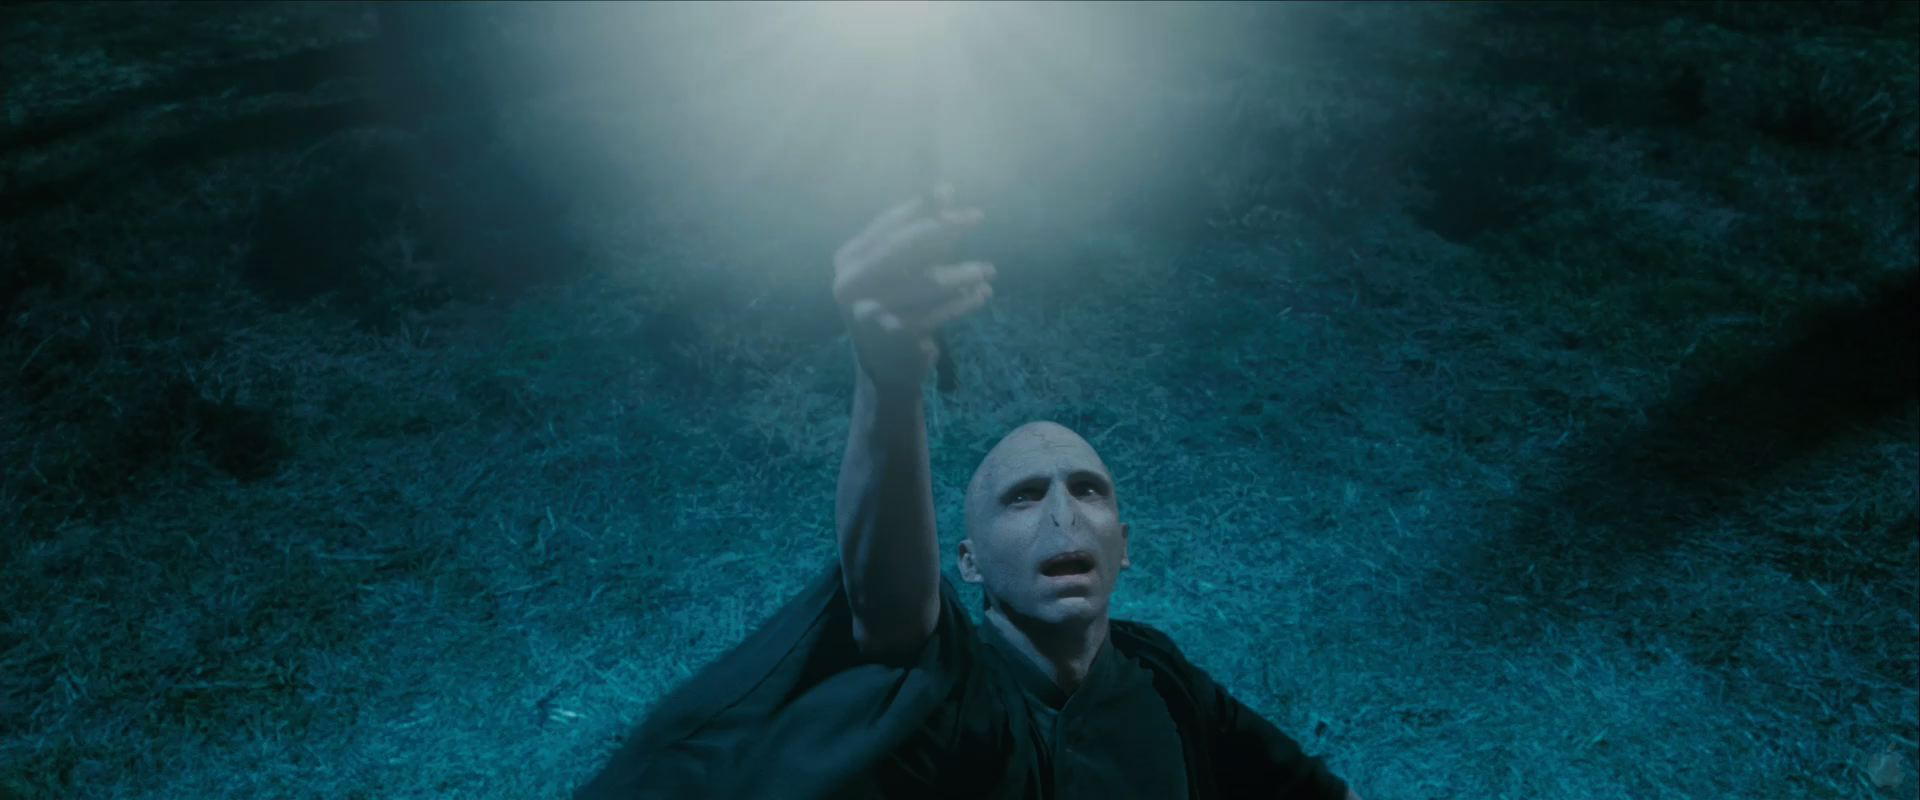 voldemort casts a spell from harry potter and the deathly hallows